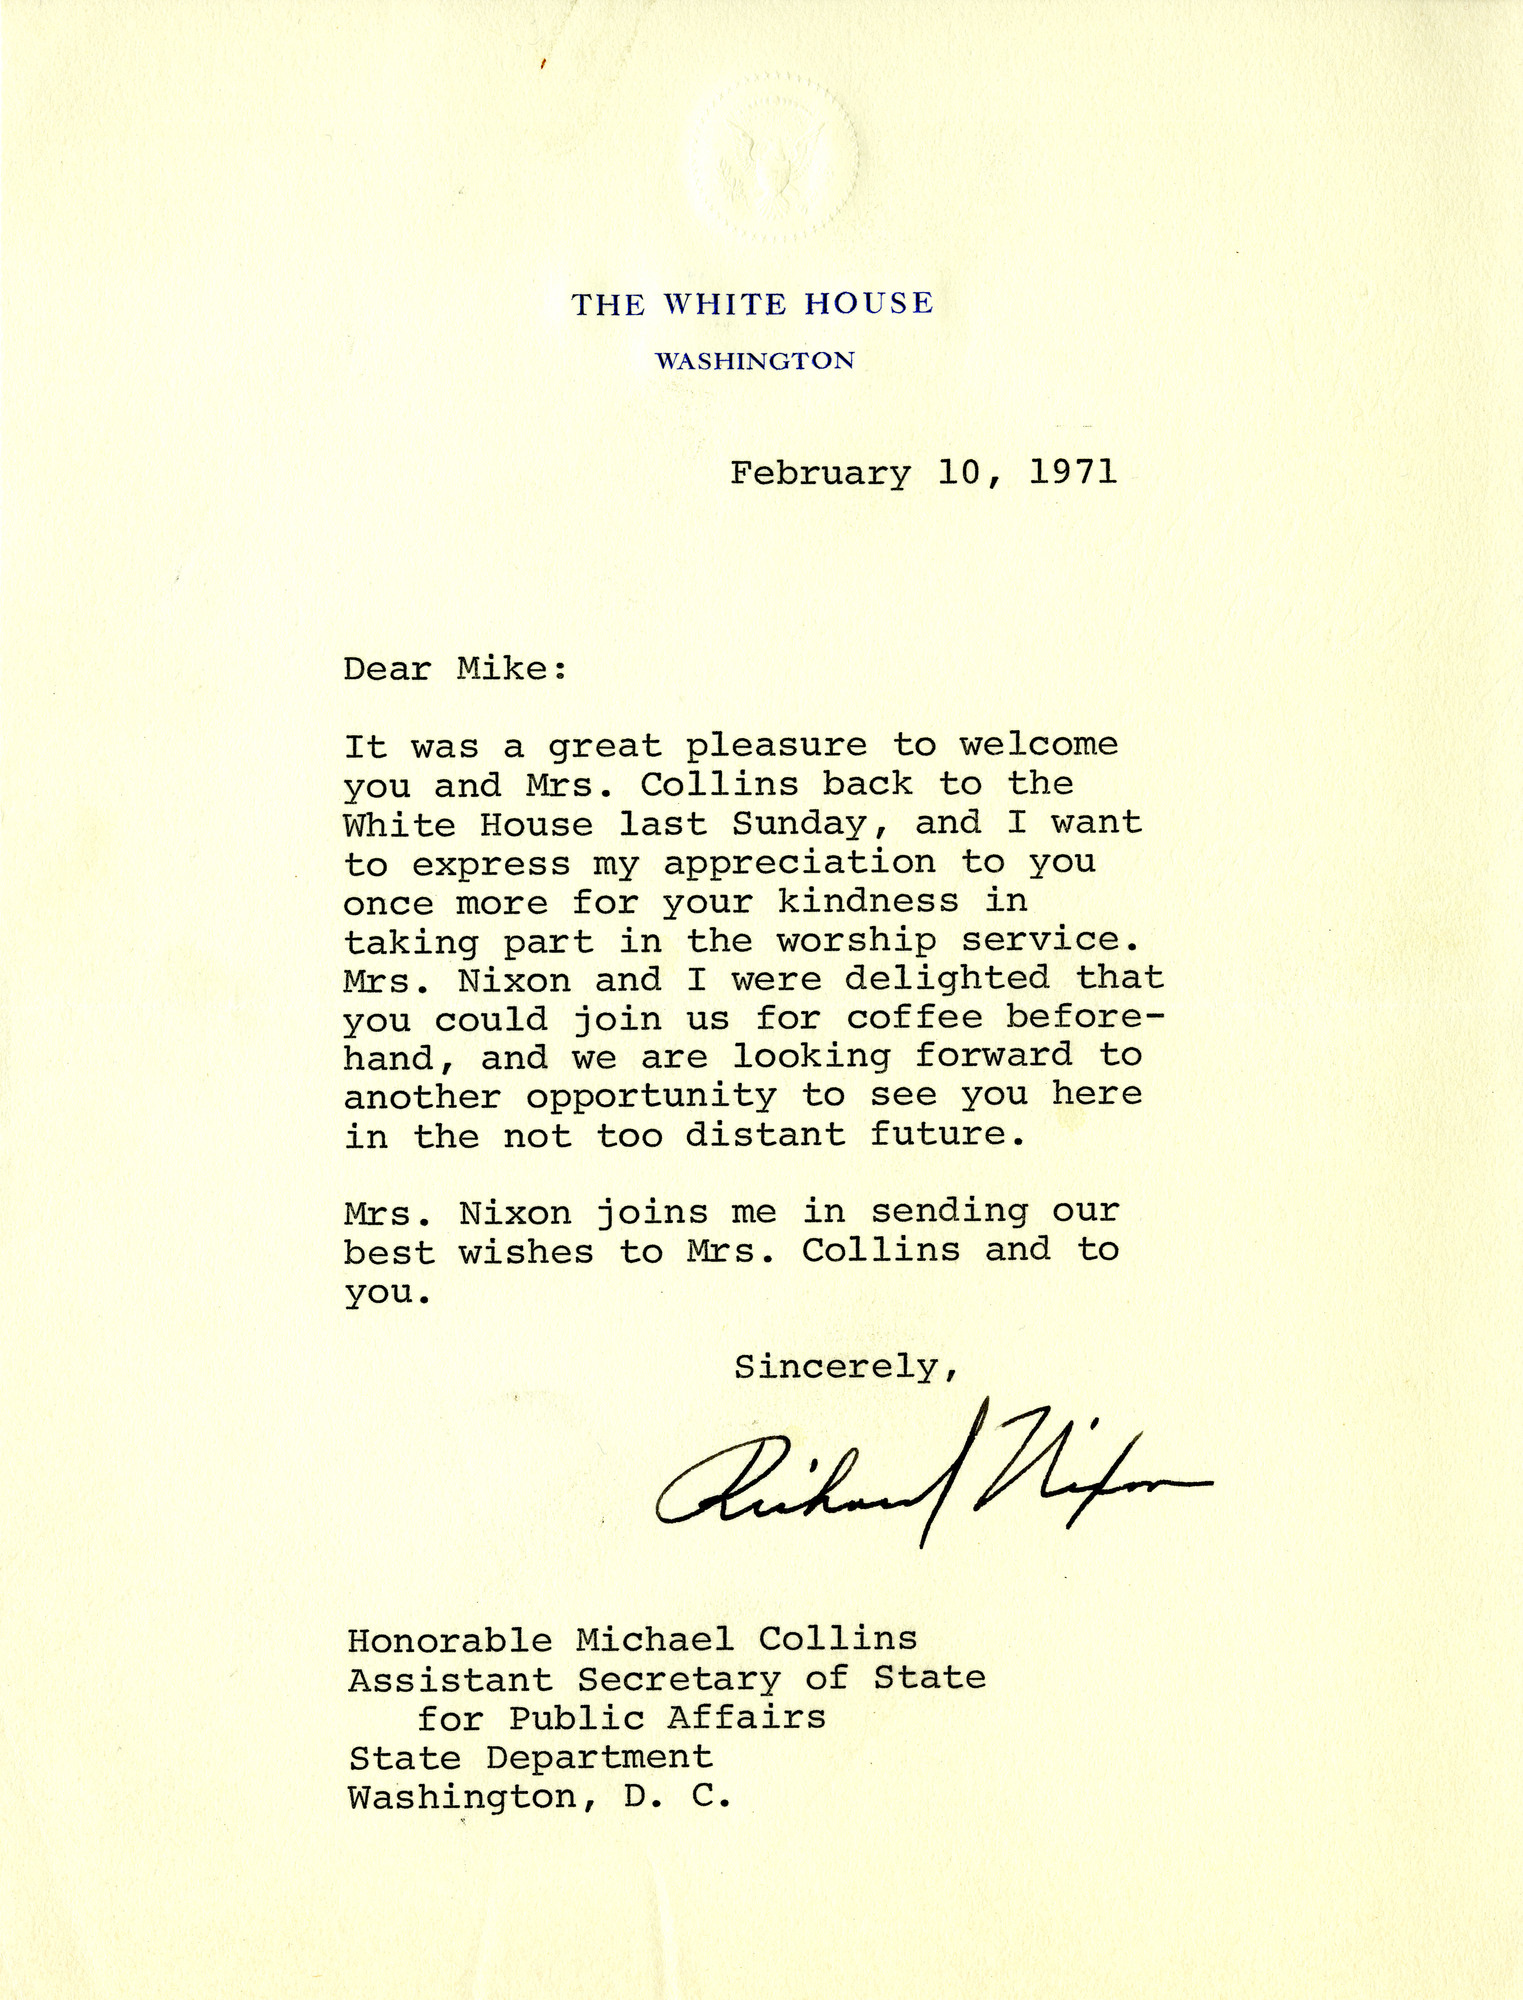 http://spec.lib.vt.edu/pickup/Omeka_upload/Ms1989-029_B18_F1_MichaelCollins_Letter_1971_0210.jpg